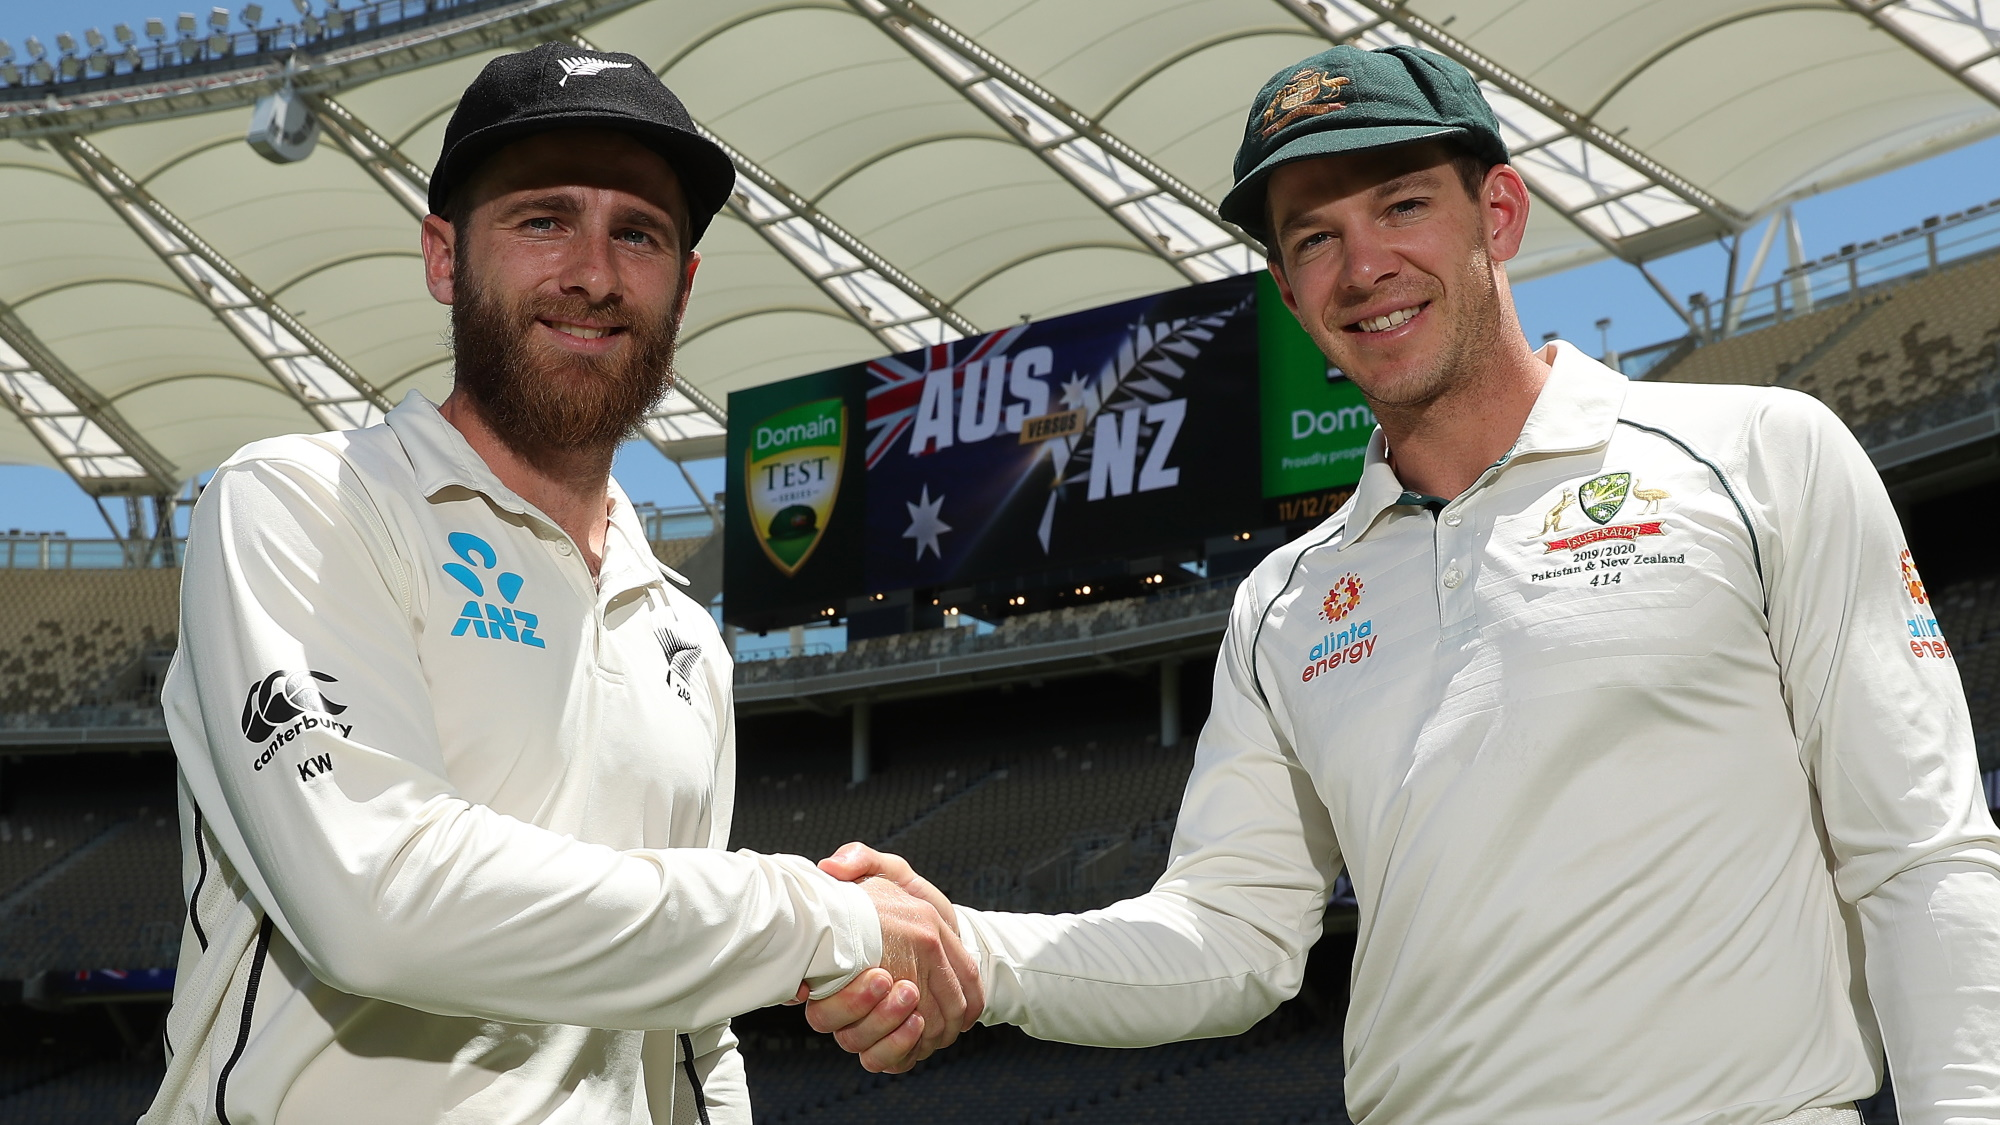 Australia vs New Zealand live stream: how to watch 2nd Test cricket 2019 from anywhere